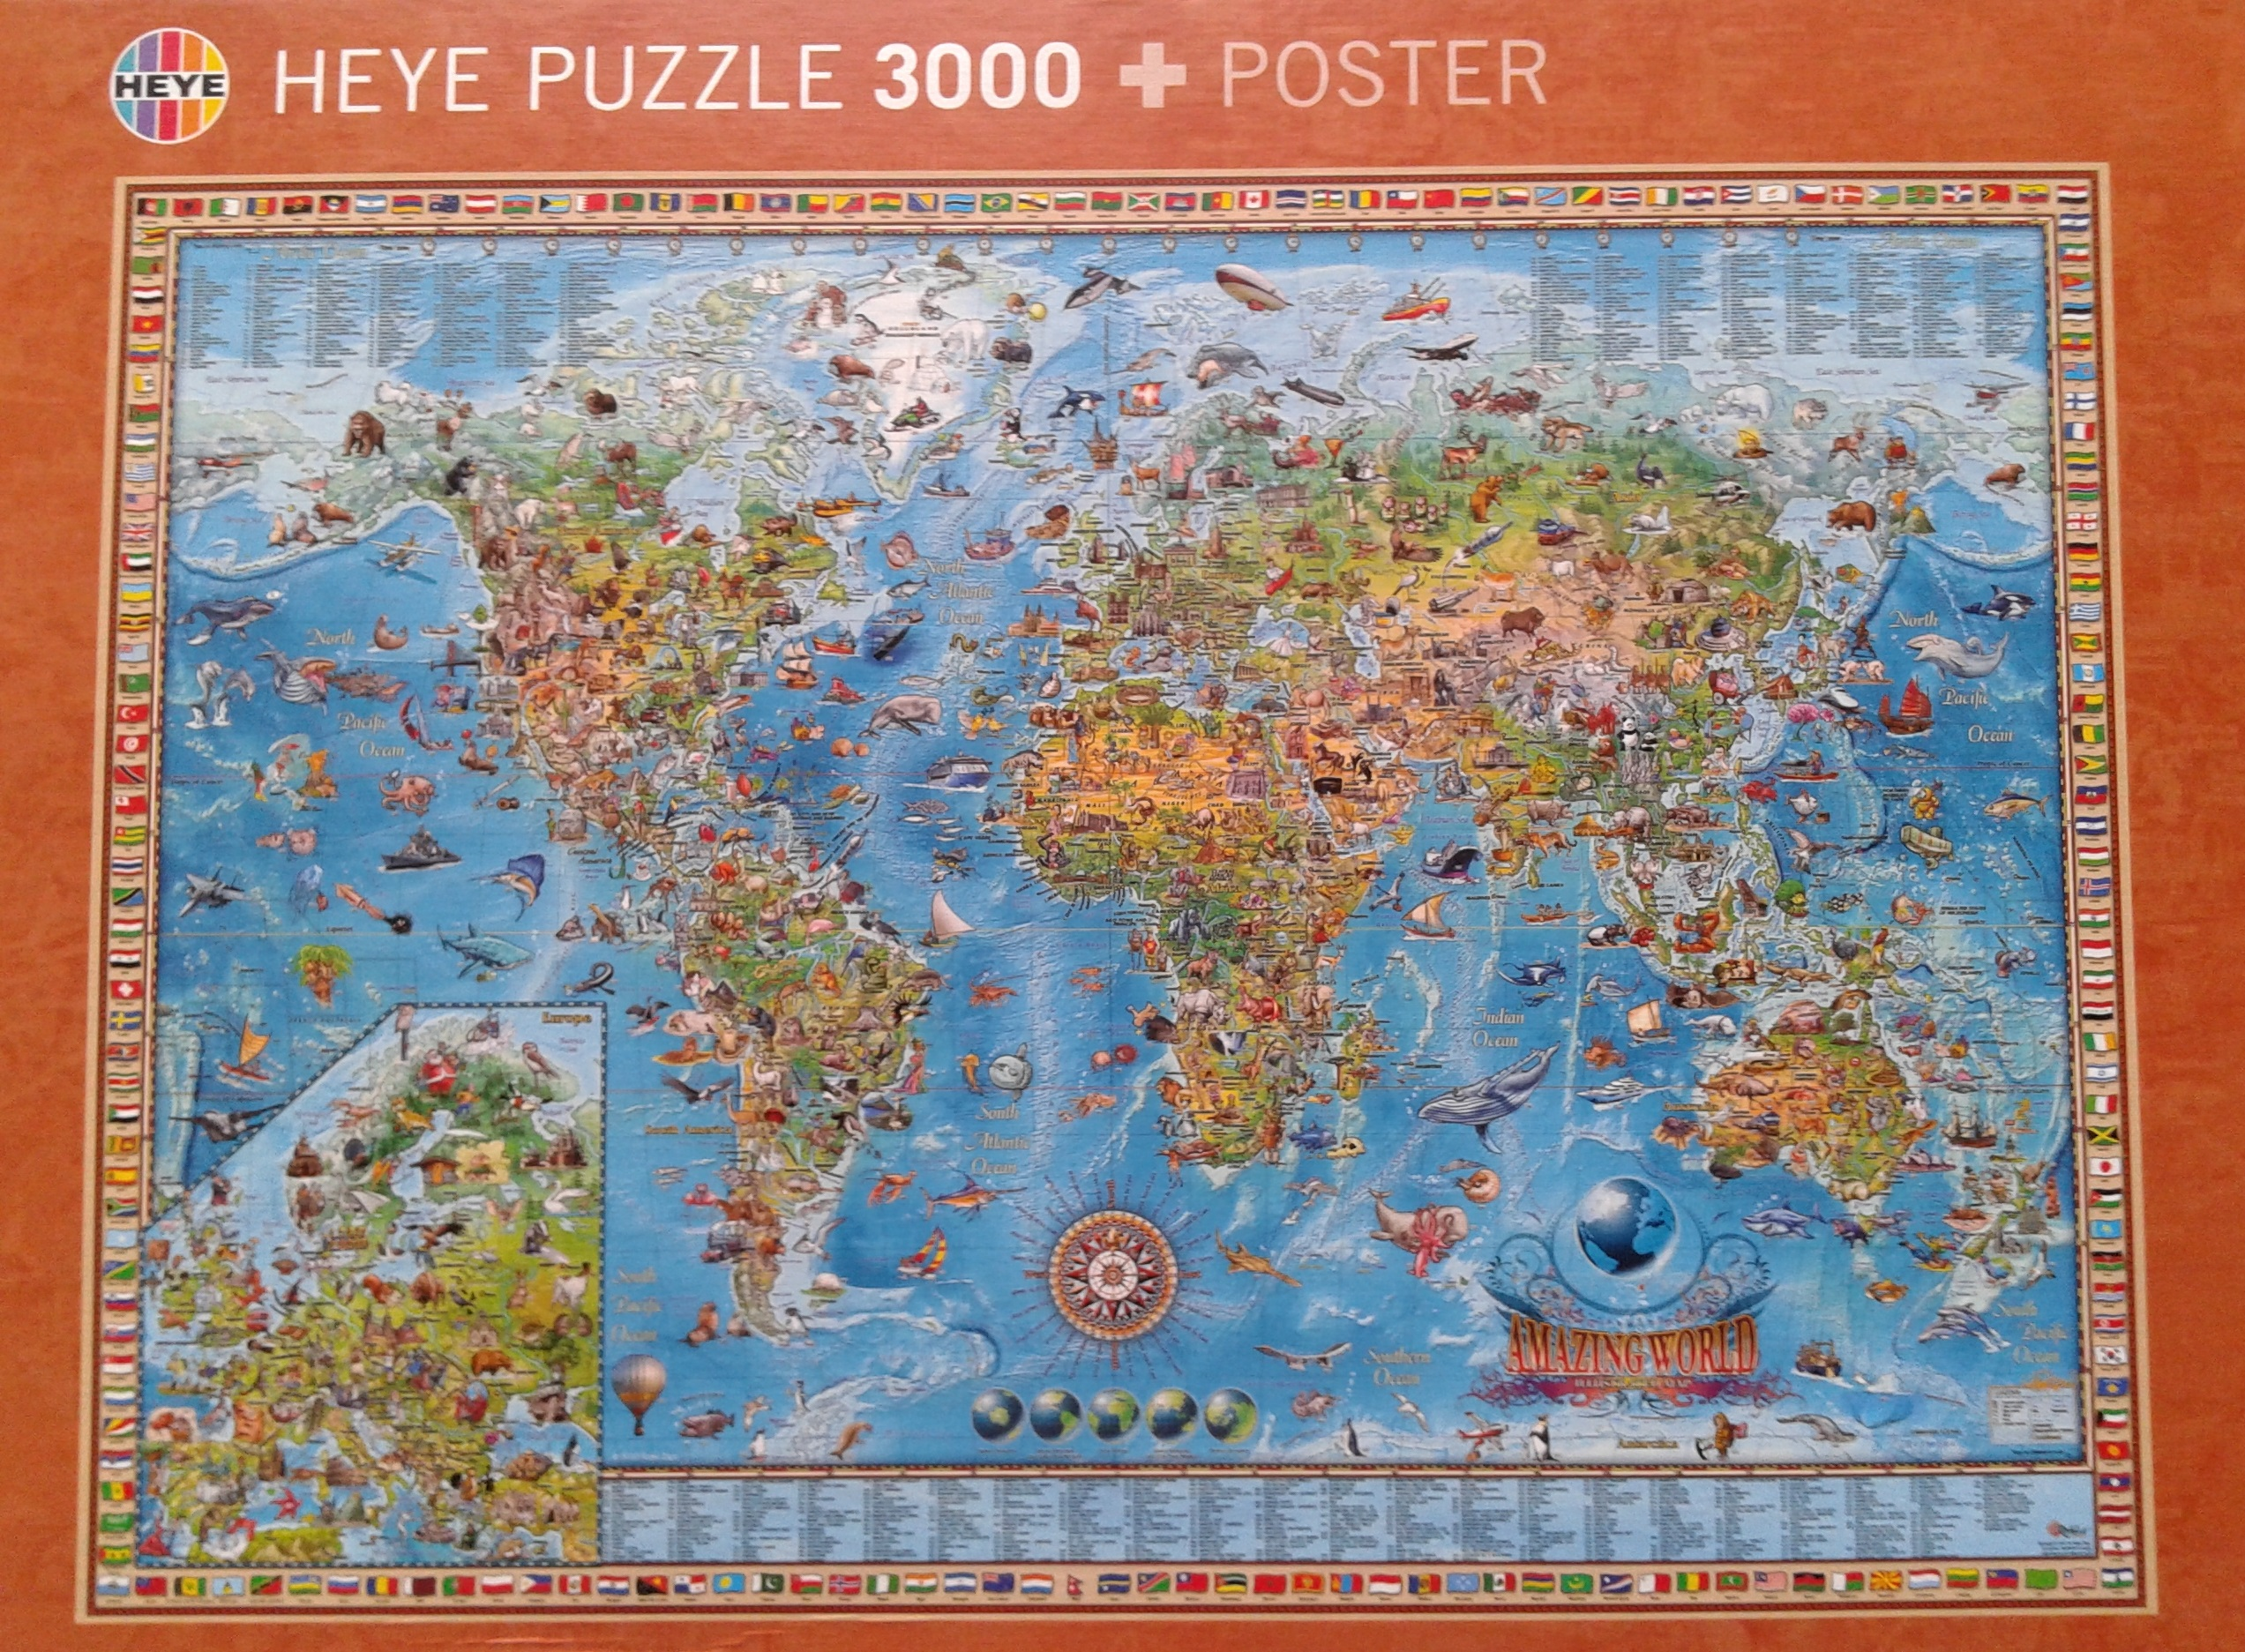 A great jigsaw puzzle and a great world map for kids our perpetual journeys